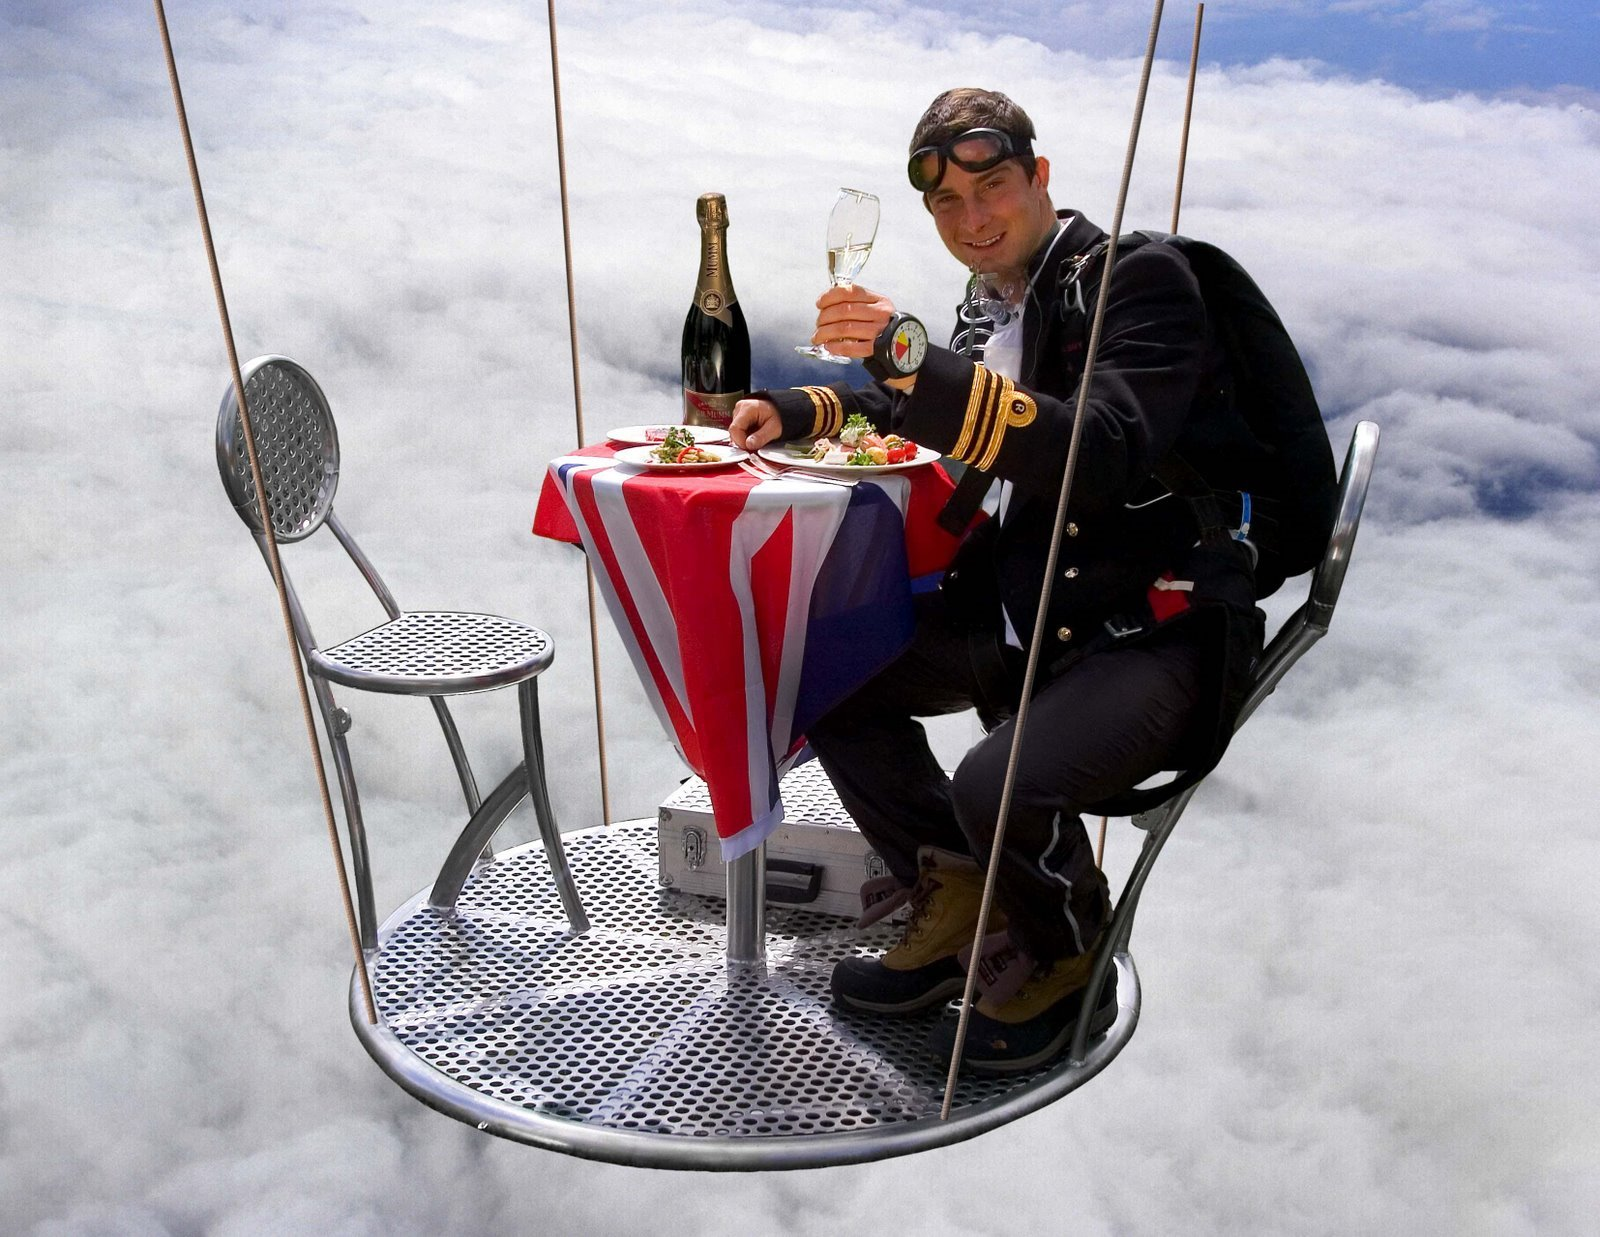 Bear Grylls enjoying a nice meal at 25,000 feet